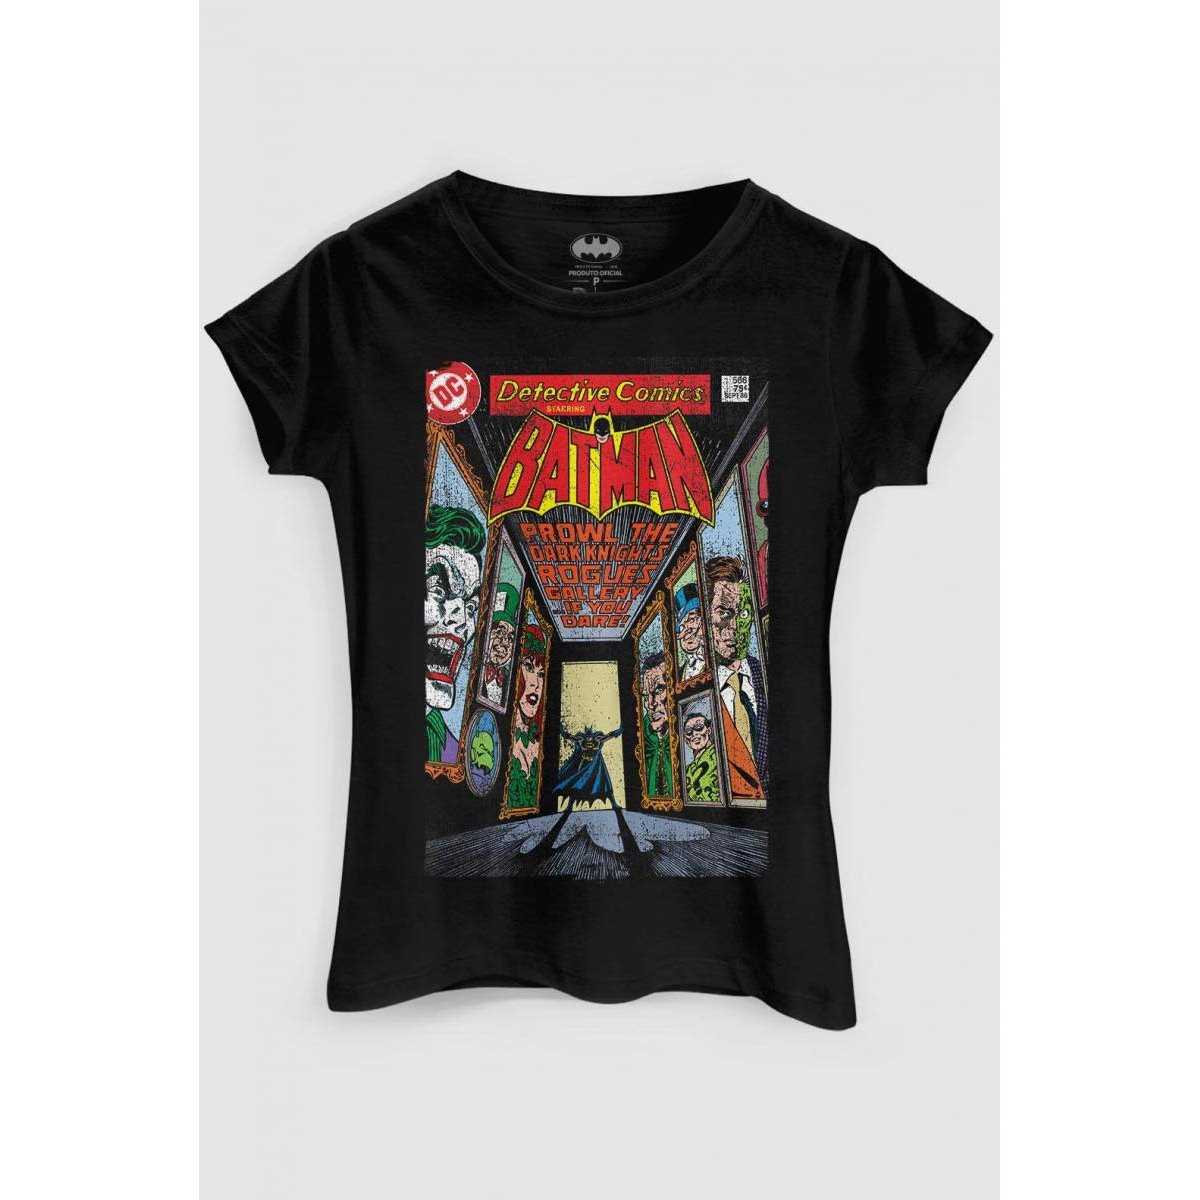 Gallery Batman Camiseta Rogues bandUP Preto Comics Camiseta DC Batman Comics DC Rogues 4qw7zAxHW